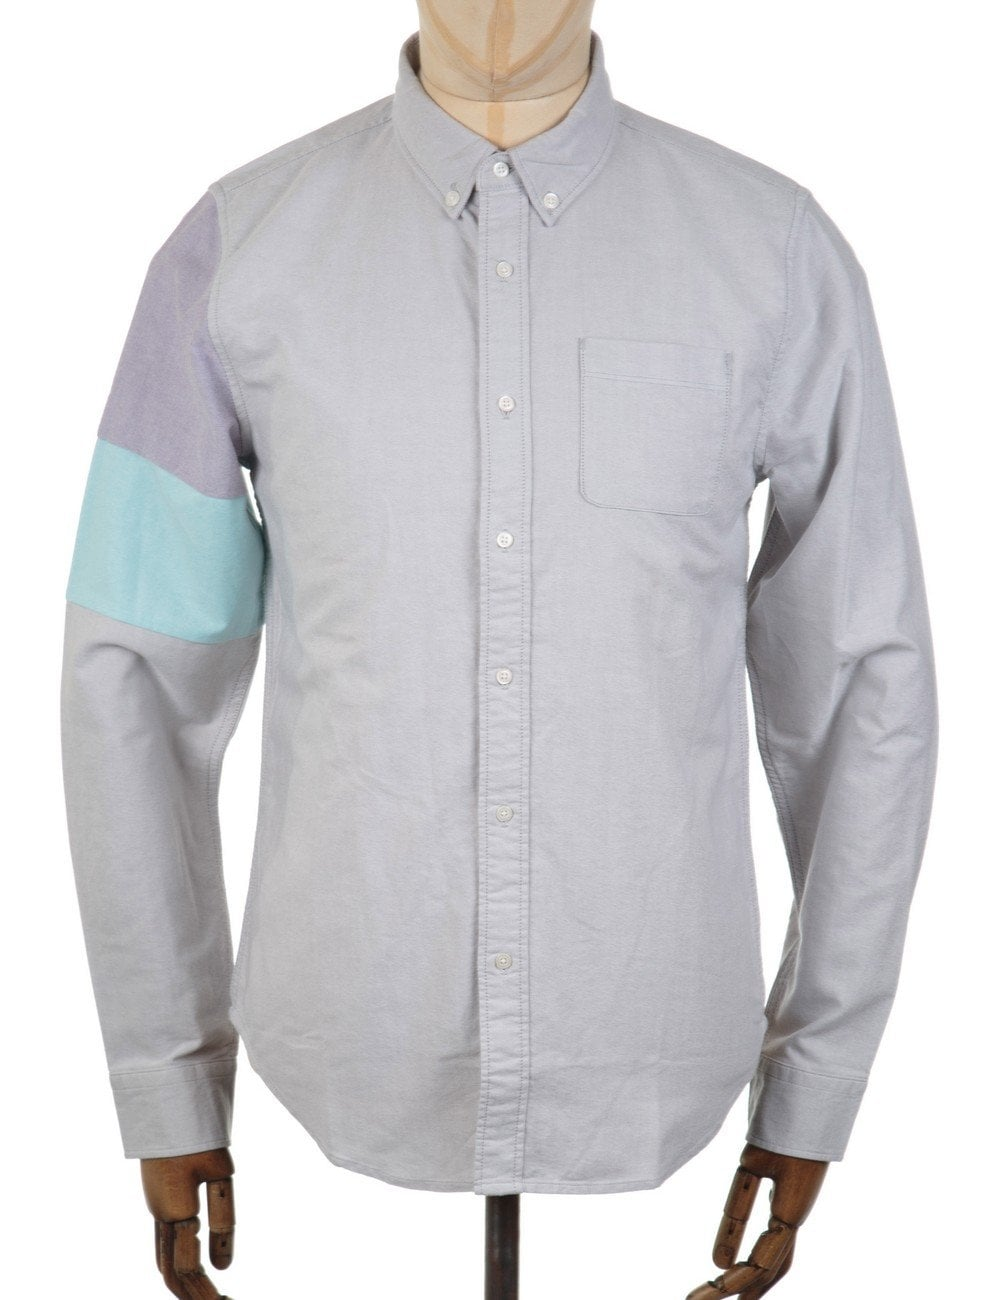 puma dress shirts grey on sale   OFF52% Discounts f103ca89cbdb7